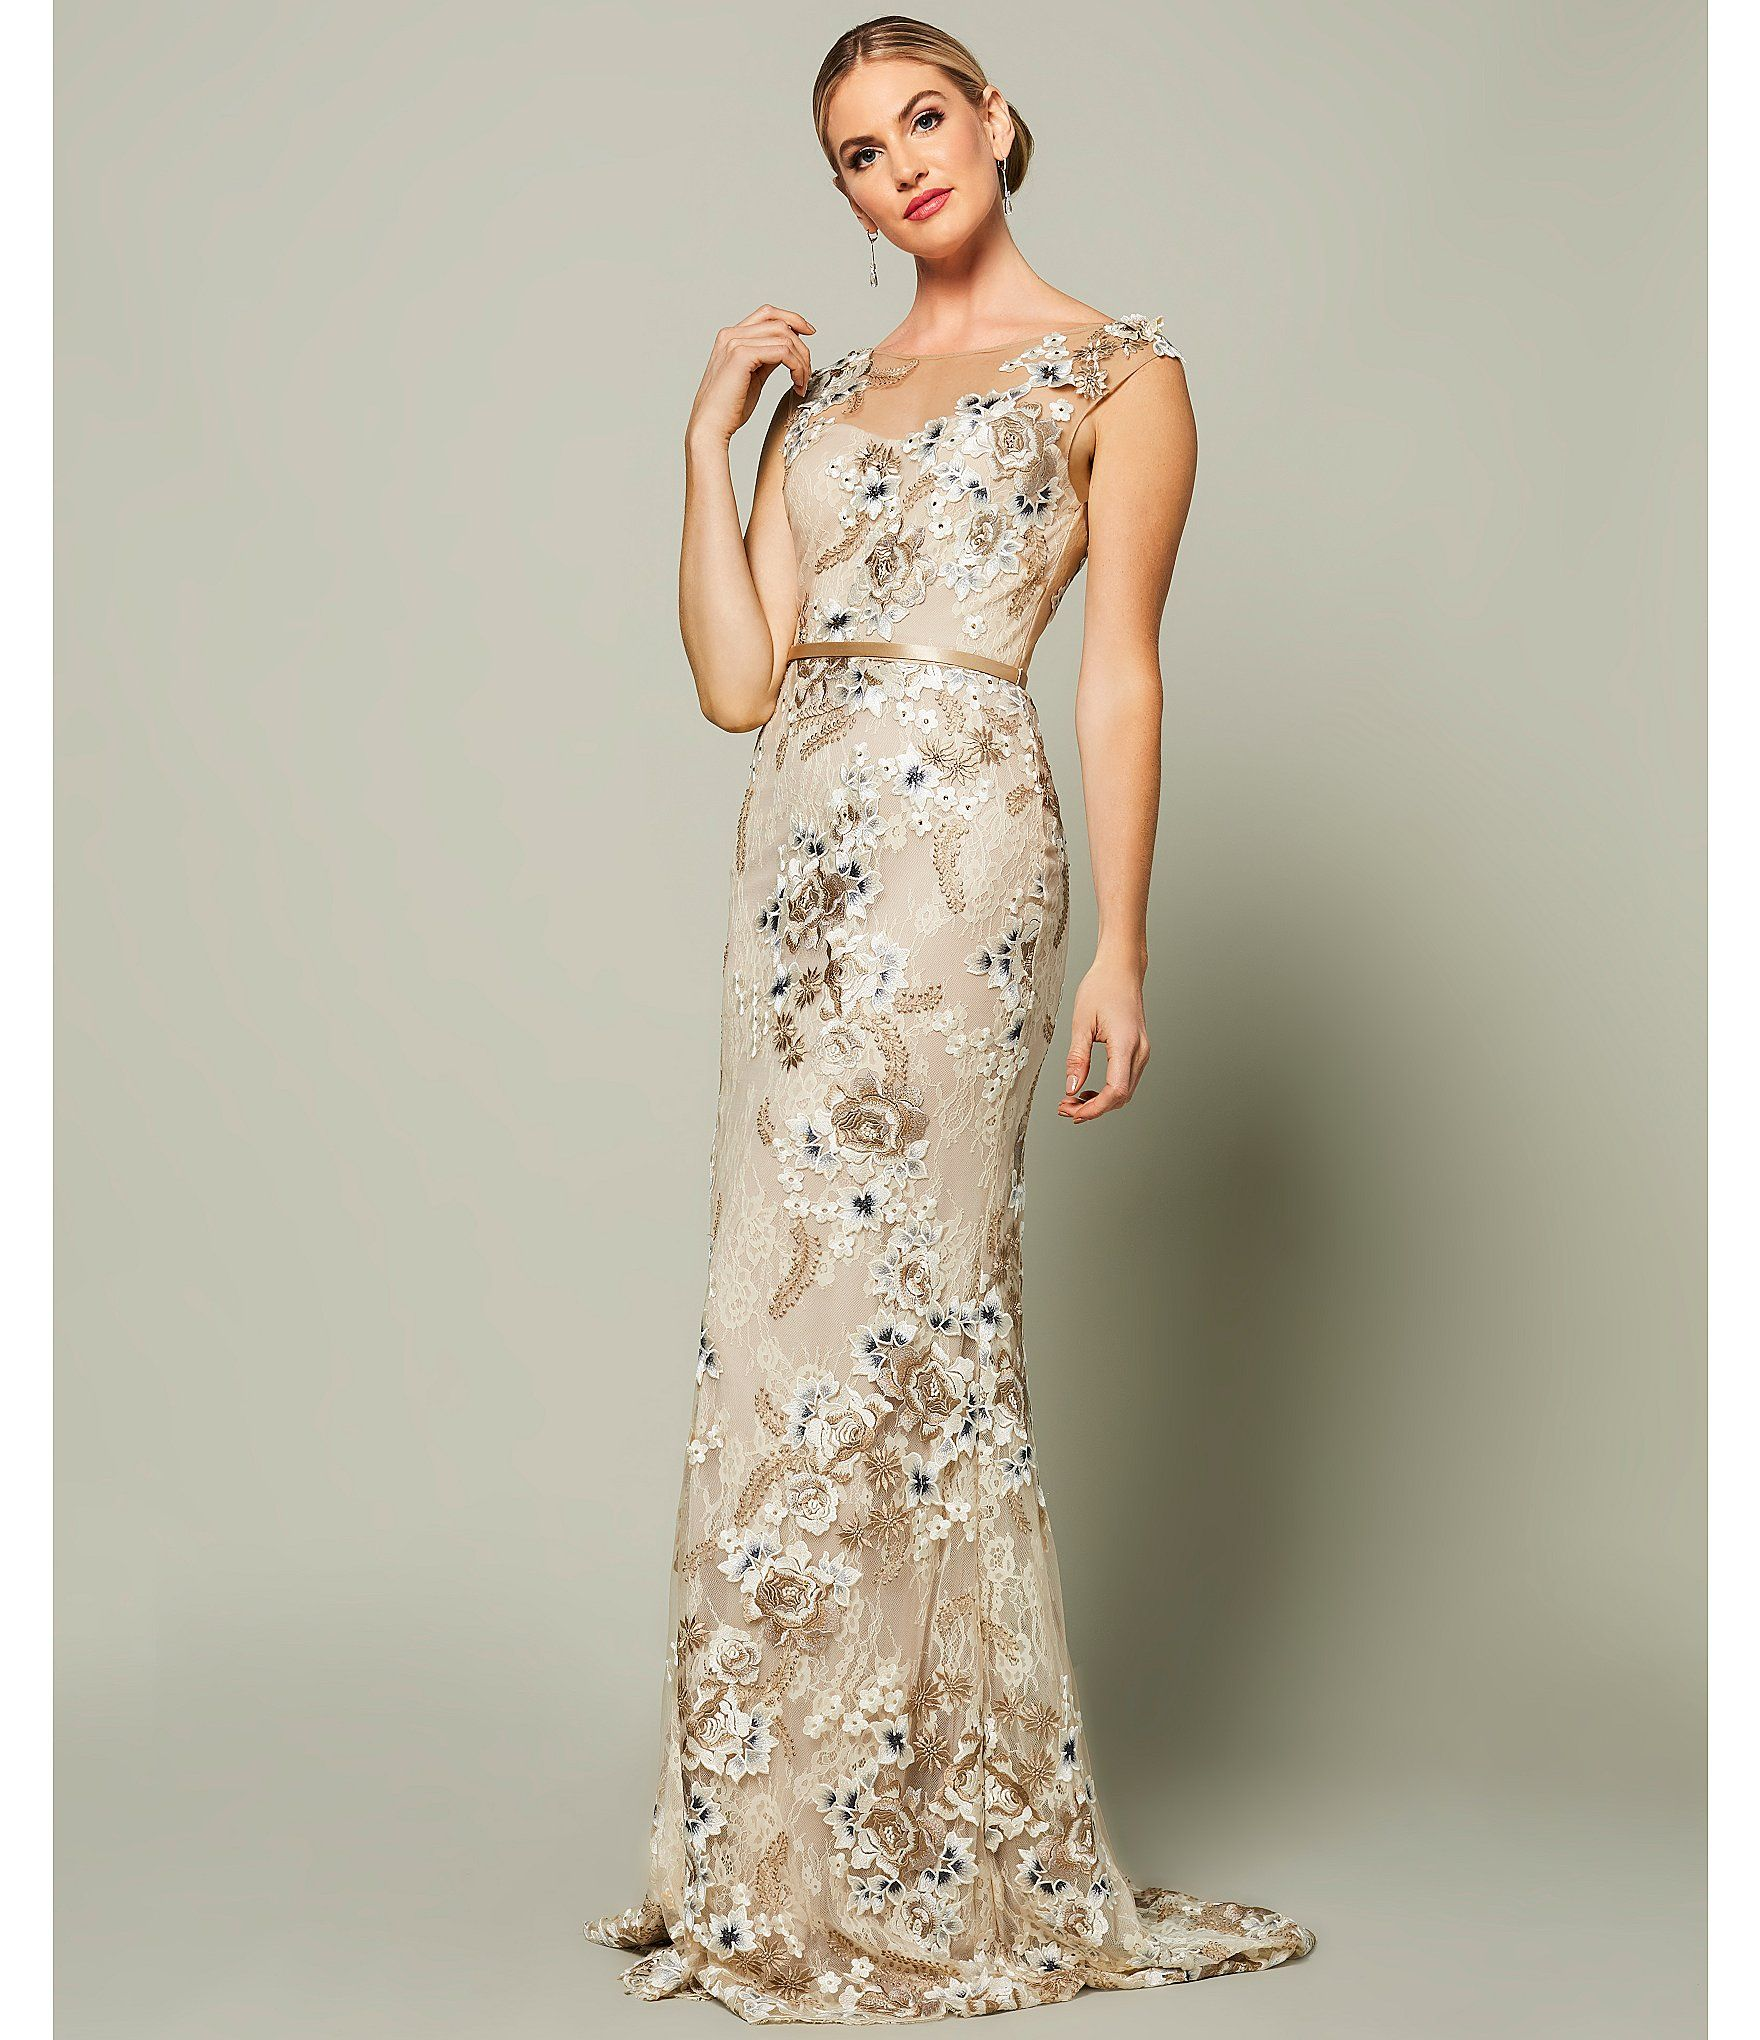 Terani Couture Floral Embroidered Lace Gown Dillards Floral Embroidered Dress Formal Evening Dresses Gowns